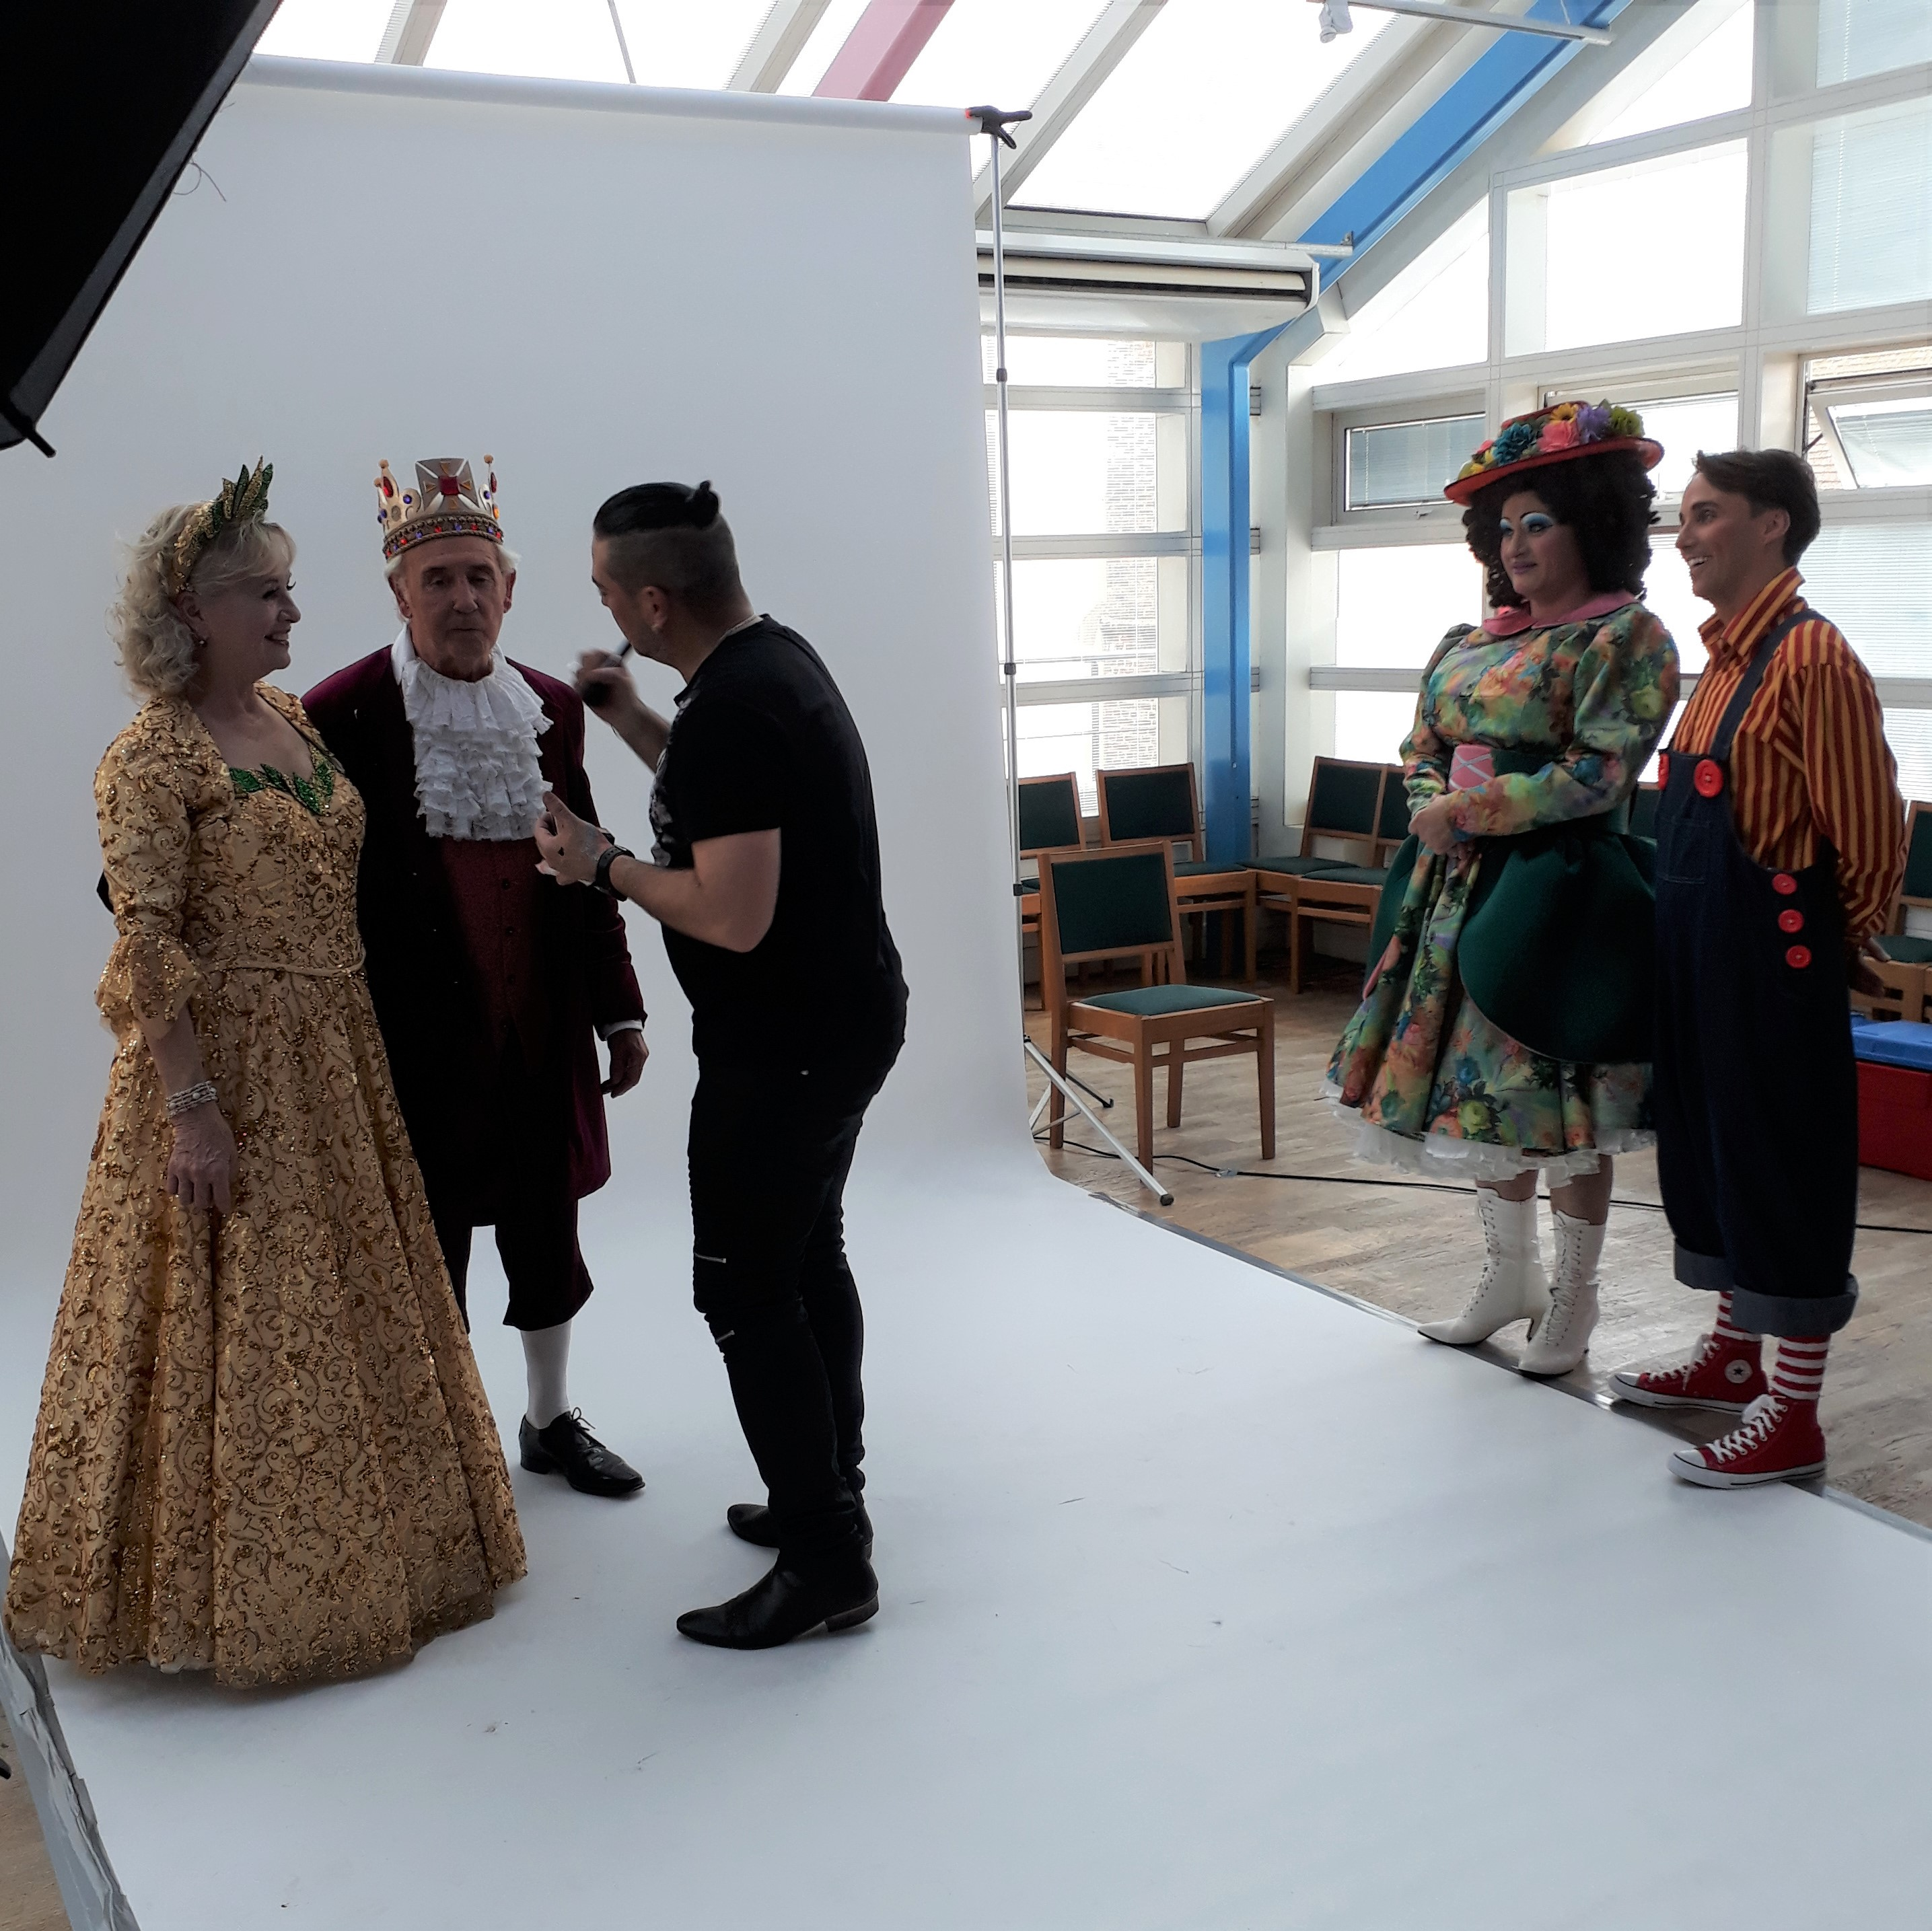 The King and Good Fairy having their make-up done at a photo-shoot